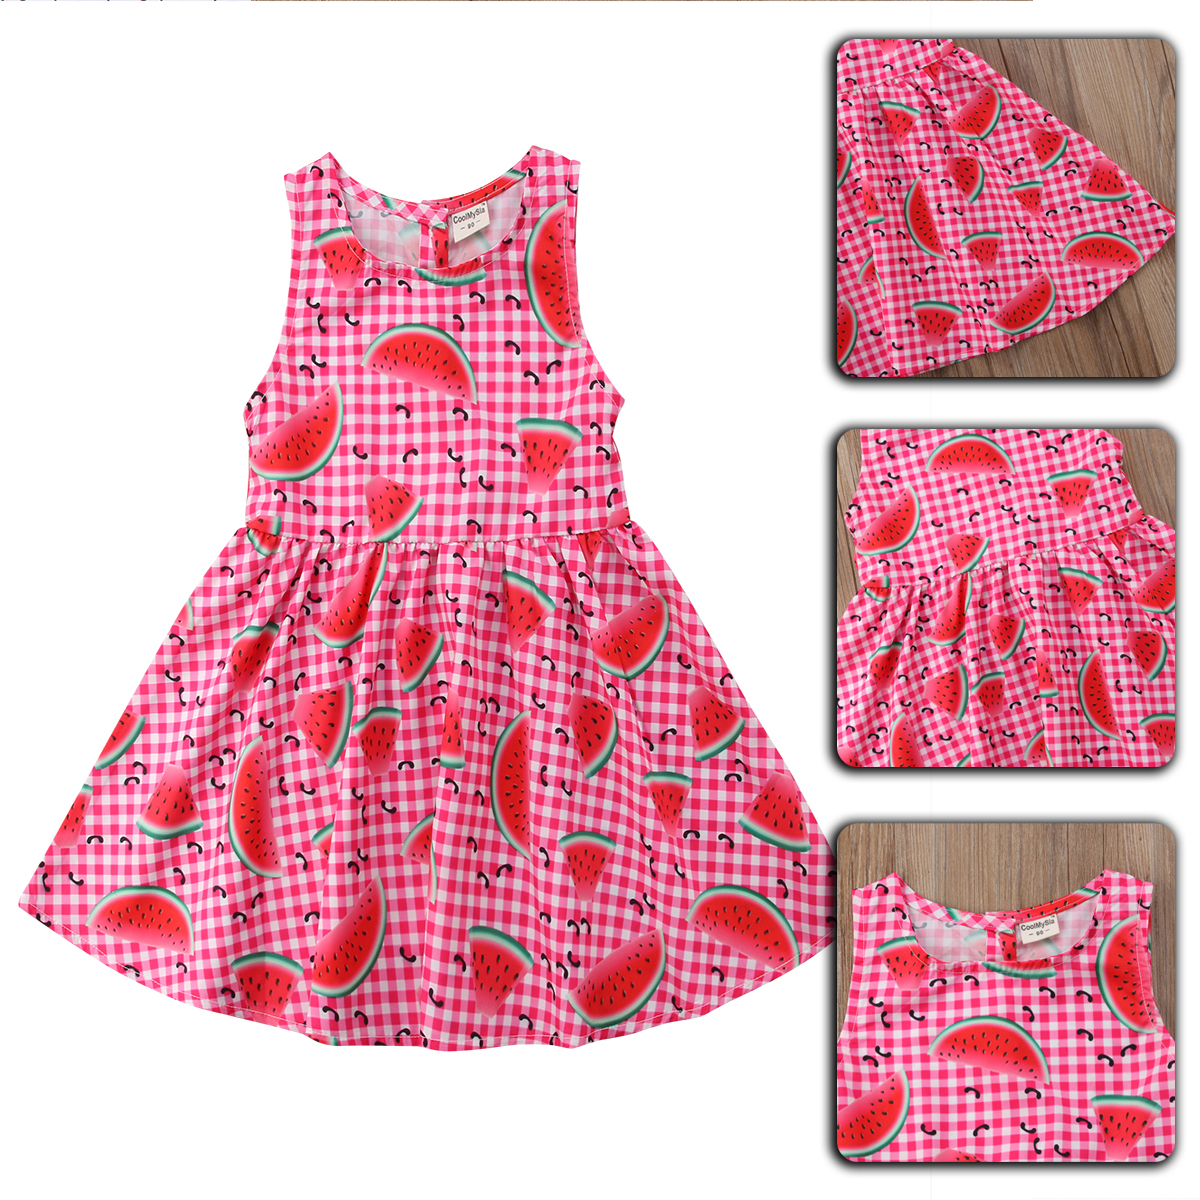 2eb65f074938 Details about Girl Kids Dress Watermelon Printing Skirt Summer 1-5 Years Summer  Party Dresses